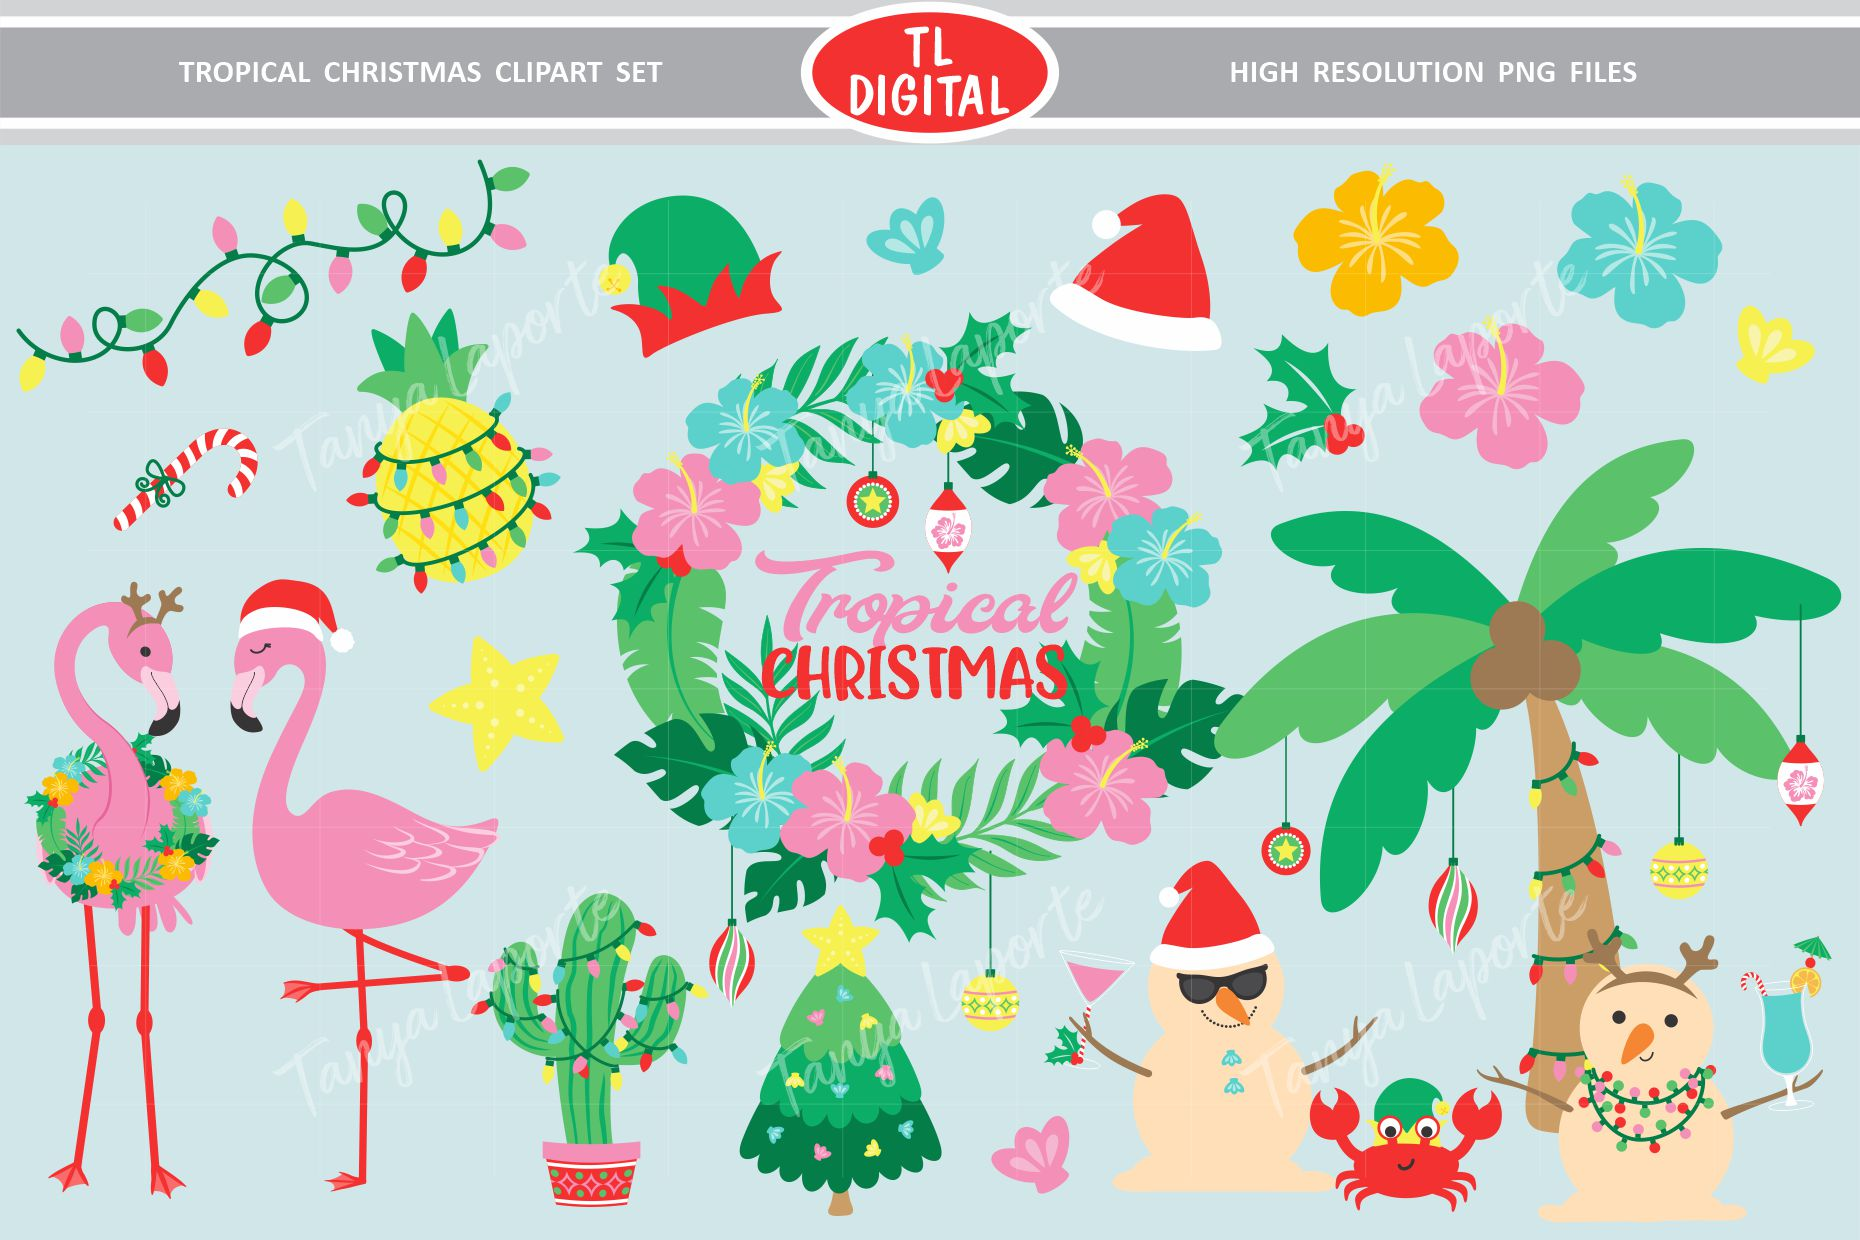 Tropical Christmas Clipart Set.